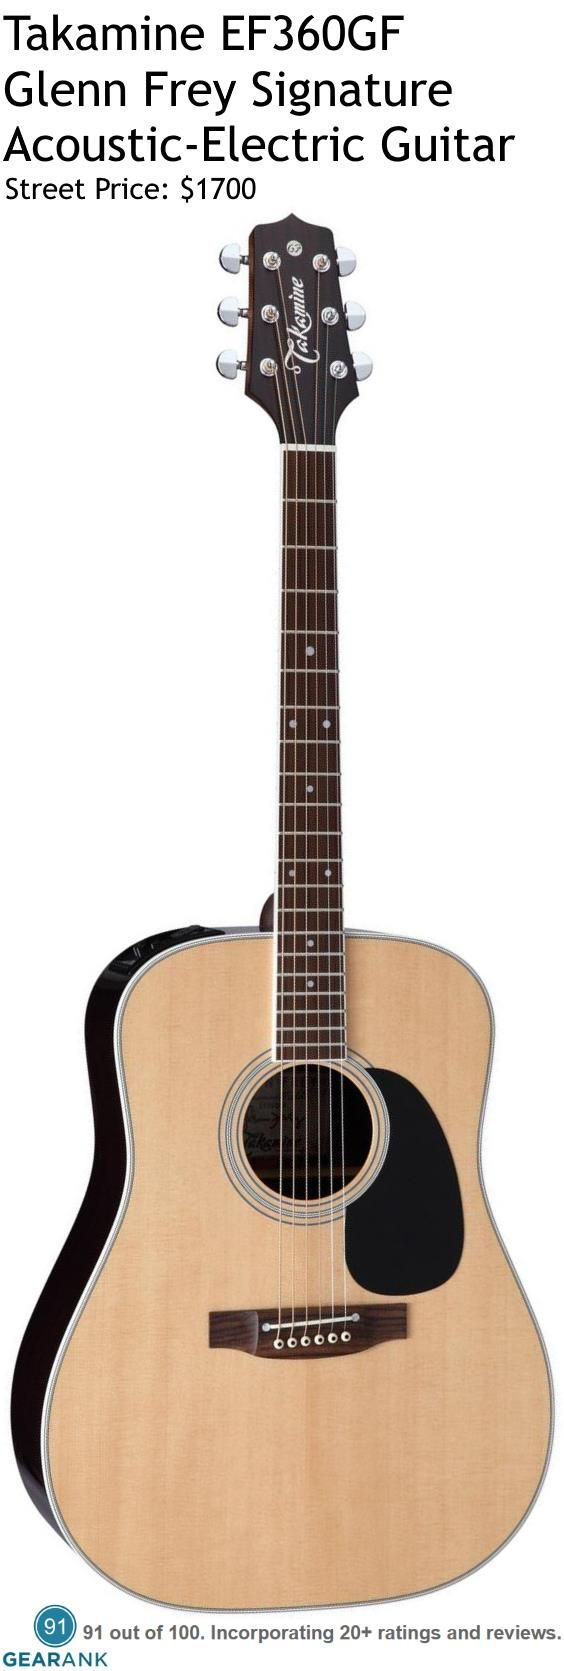 Takamine EF360GF Glenn Frey Signature Acoustic-Electric Guitar. This is a direct reproduction of Glenn Fry's #1 Takamine that he has used on tour for many years. It features a Solid Spruce top, Solid Rosewood back and Laminated Rosewood sides. For a detailed guide to Acoustic Guitars see https://www.gearank.com/guides/acoustic-guitars